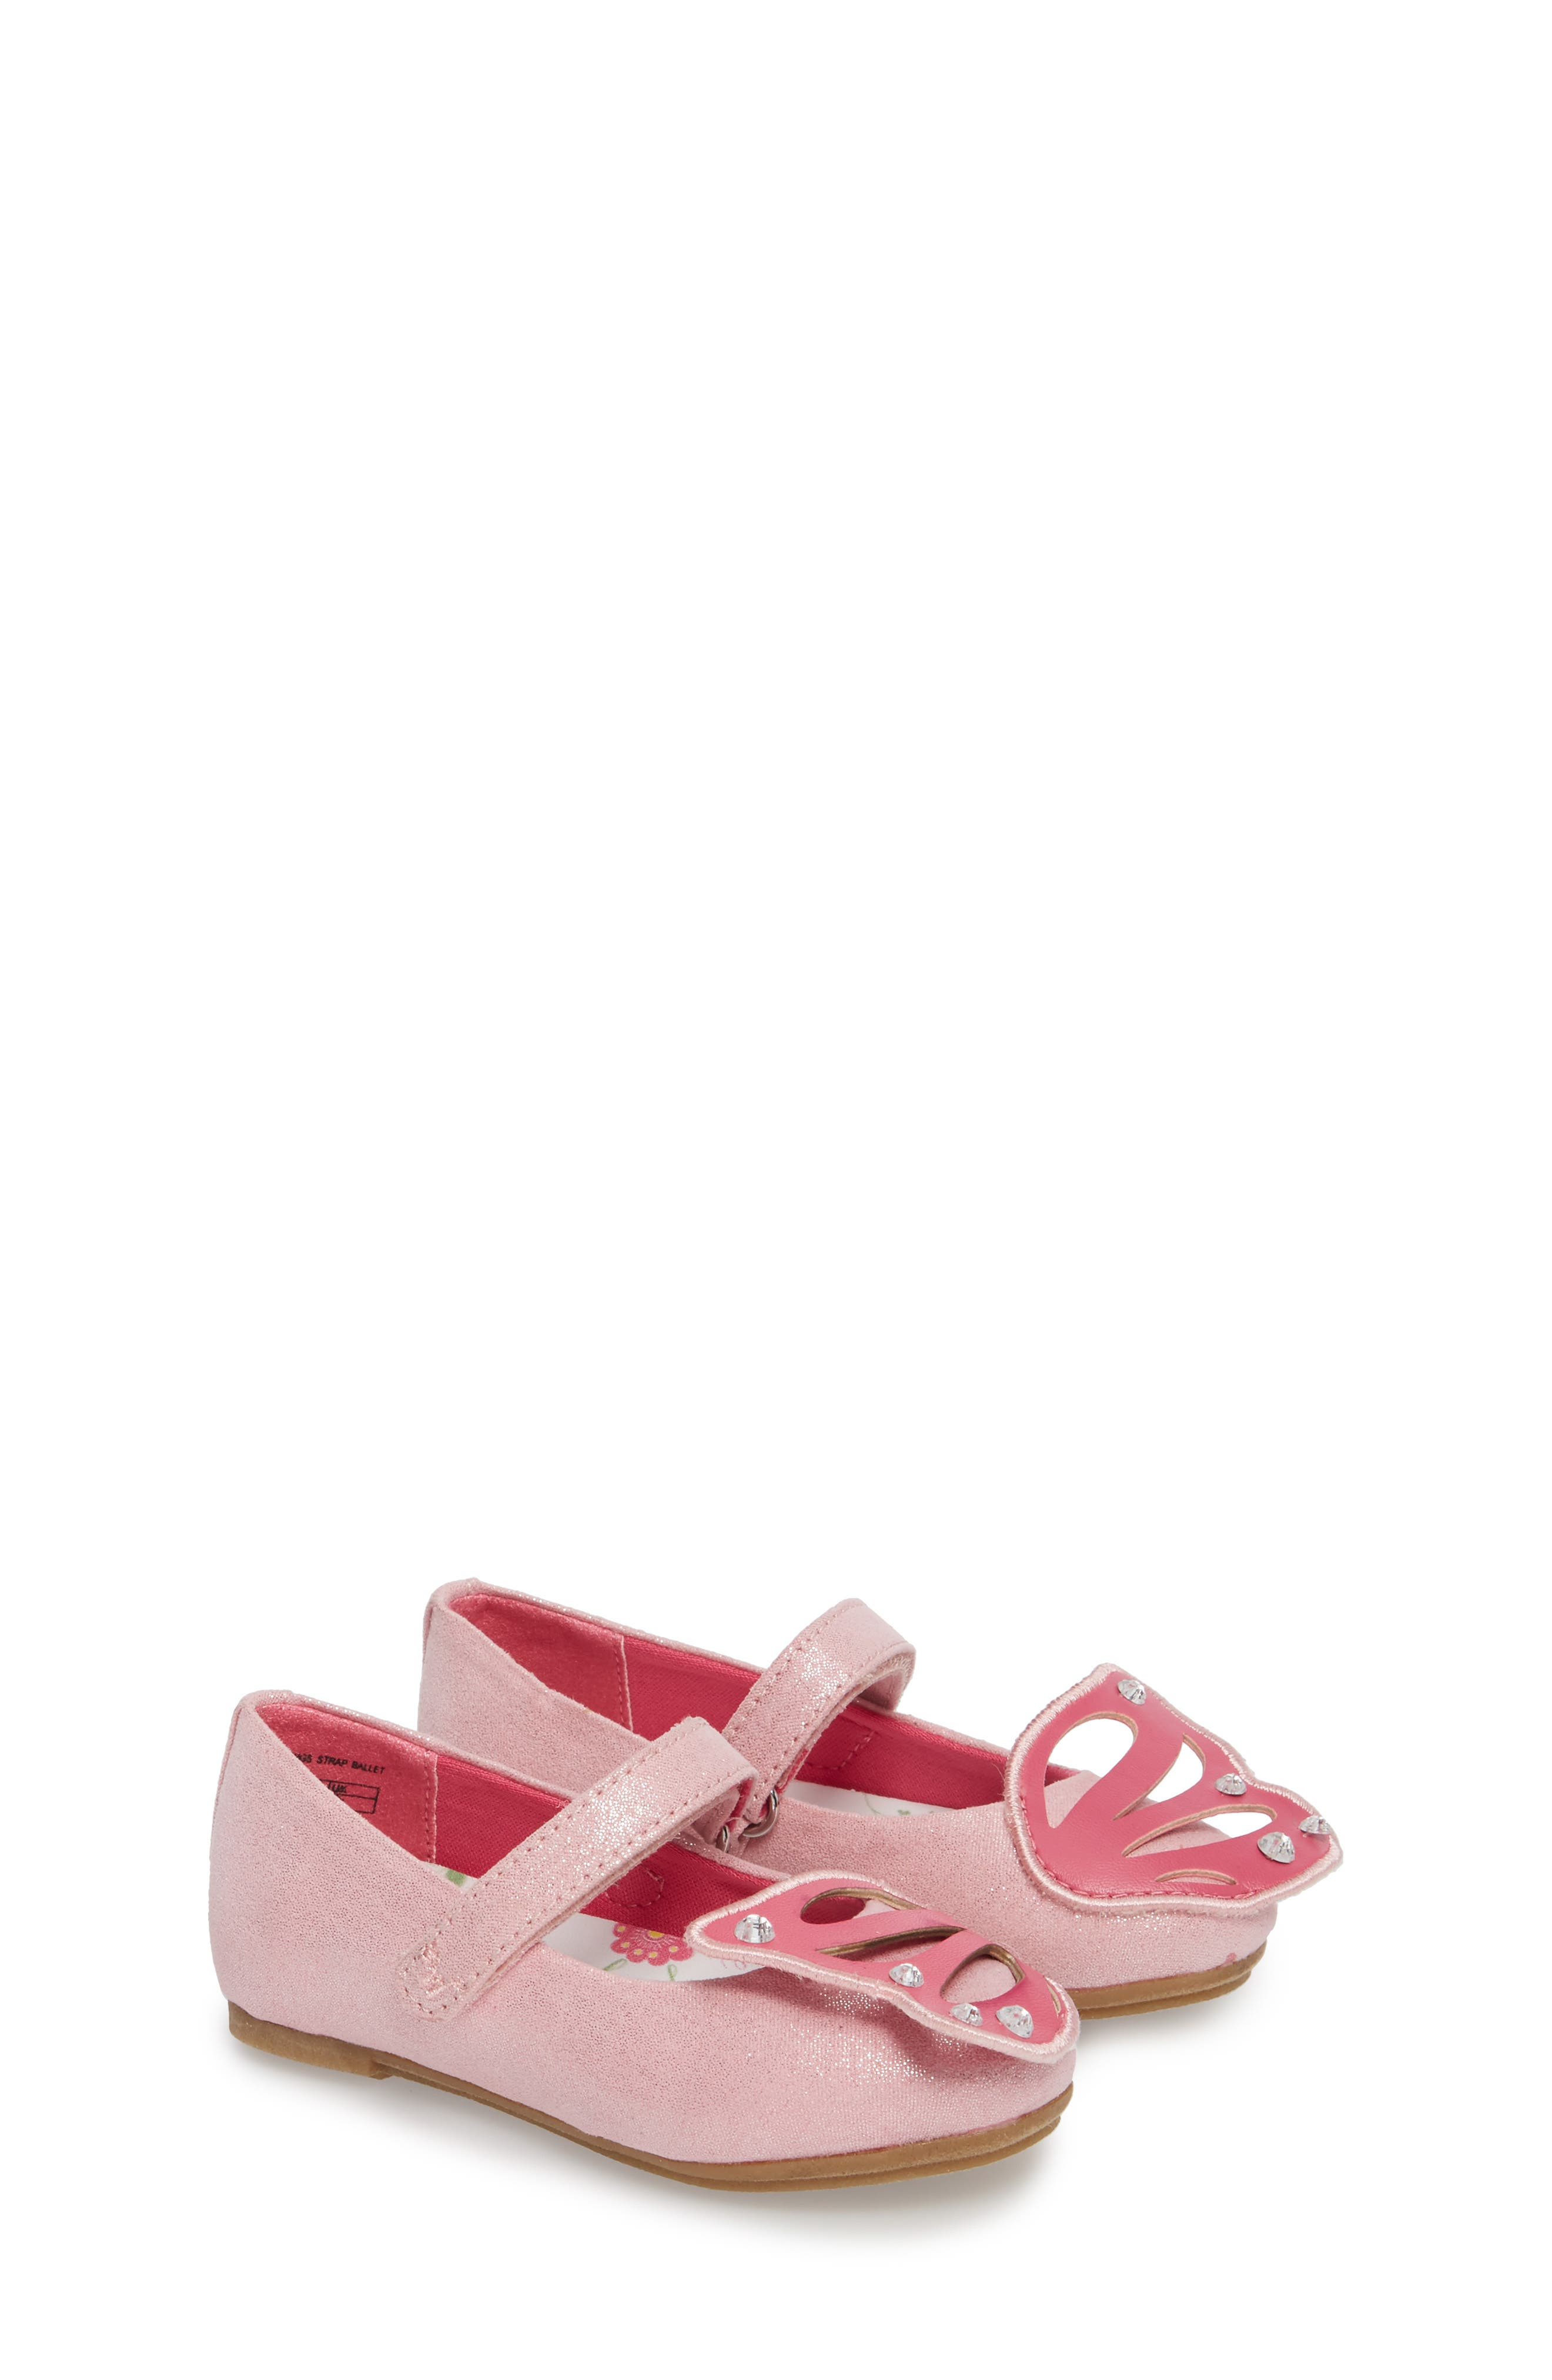 WELLIEWISHERS FROM AMERICAN GIRL Flutter Wings Embellished Ballet Flat, Main, color, 650